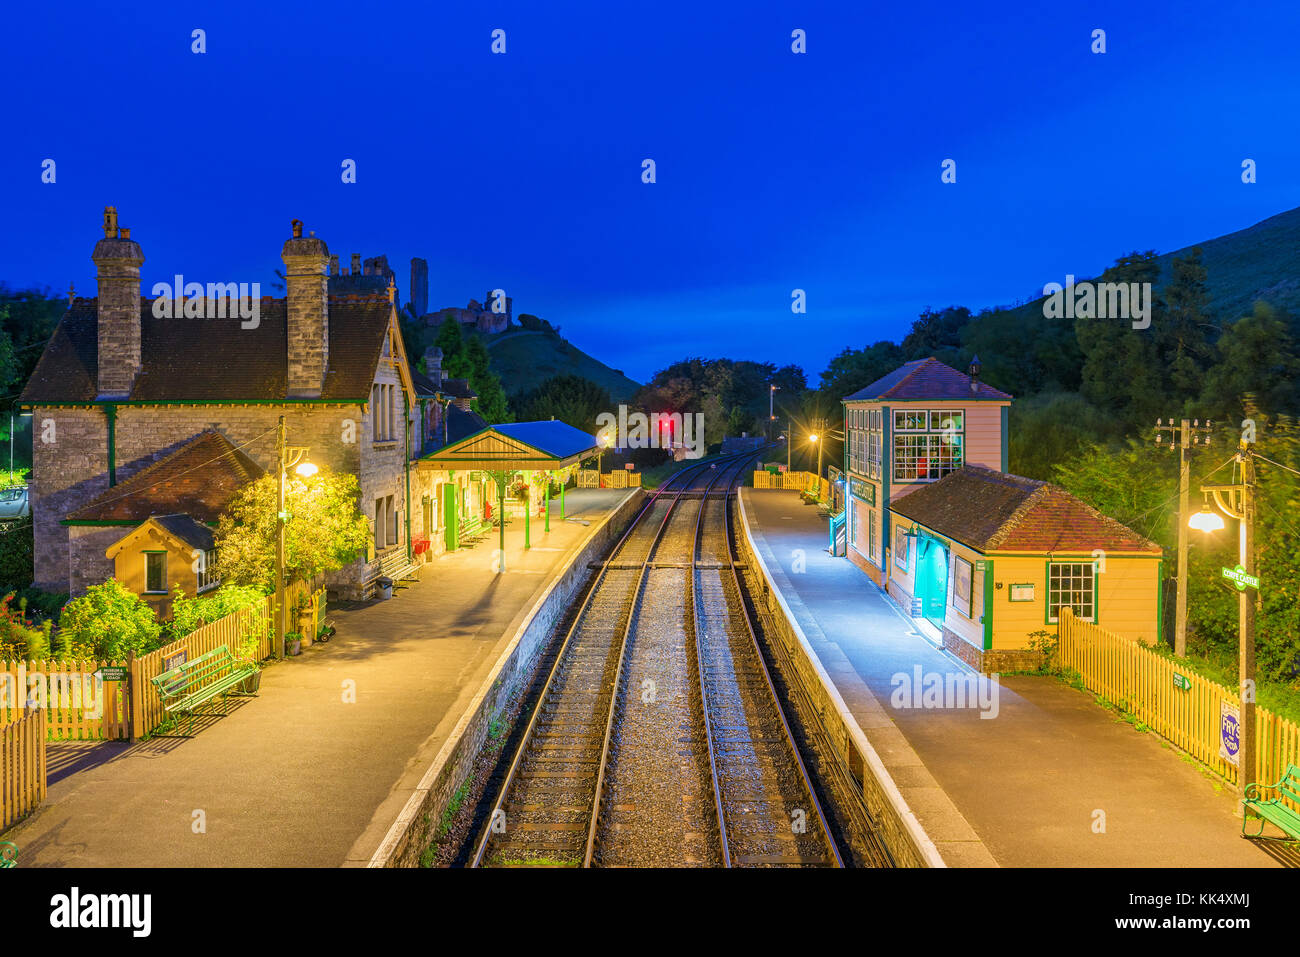 CORFE, UNITED KINGDOM - SEPTEMBER 08: This is a night view of the Corfe Castle railway station traditional medieval - Stock Image